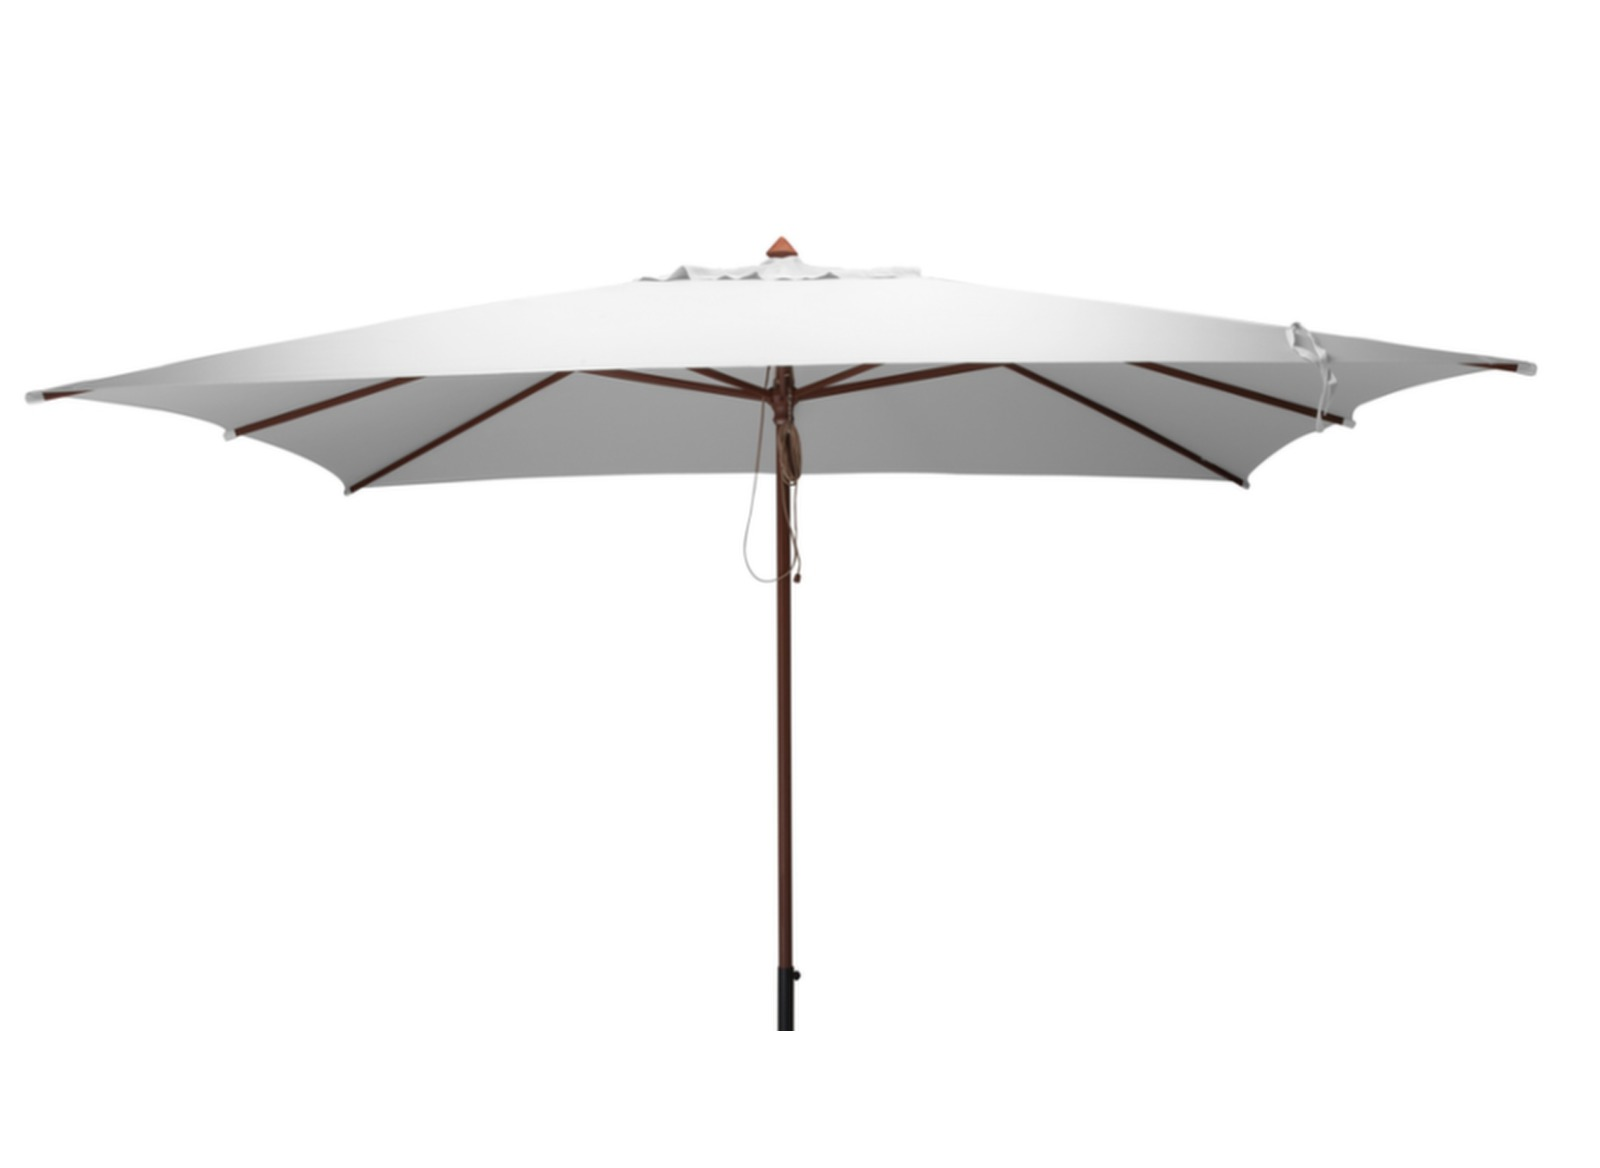 parasol rectangulaire en bois 3x4m mobilier de jardin proloisirs. Black Bedroom Furniture Sets. Home Design Ideas